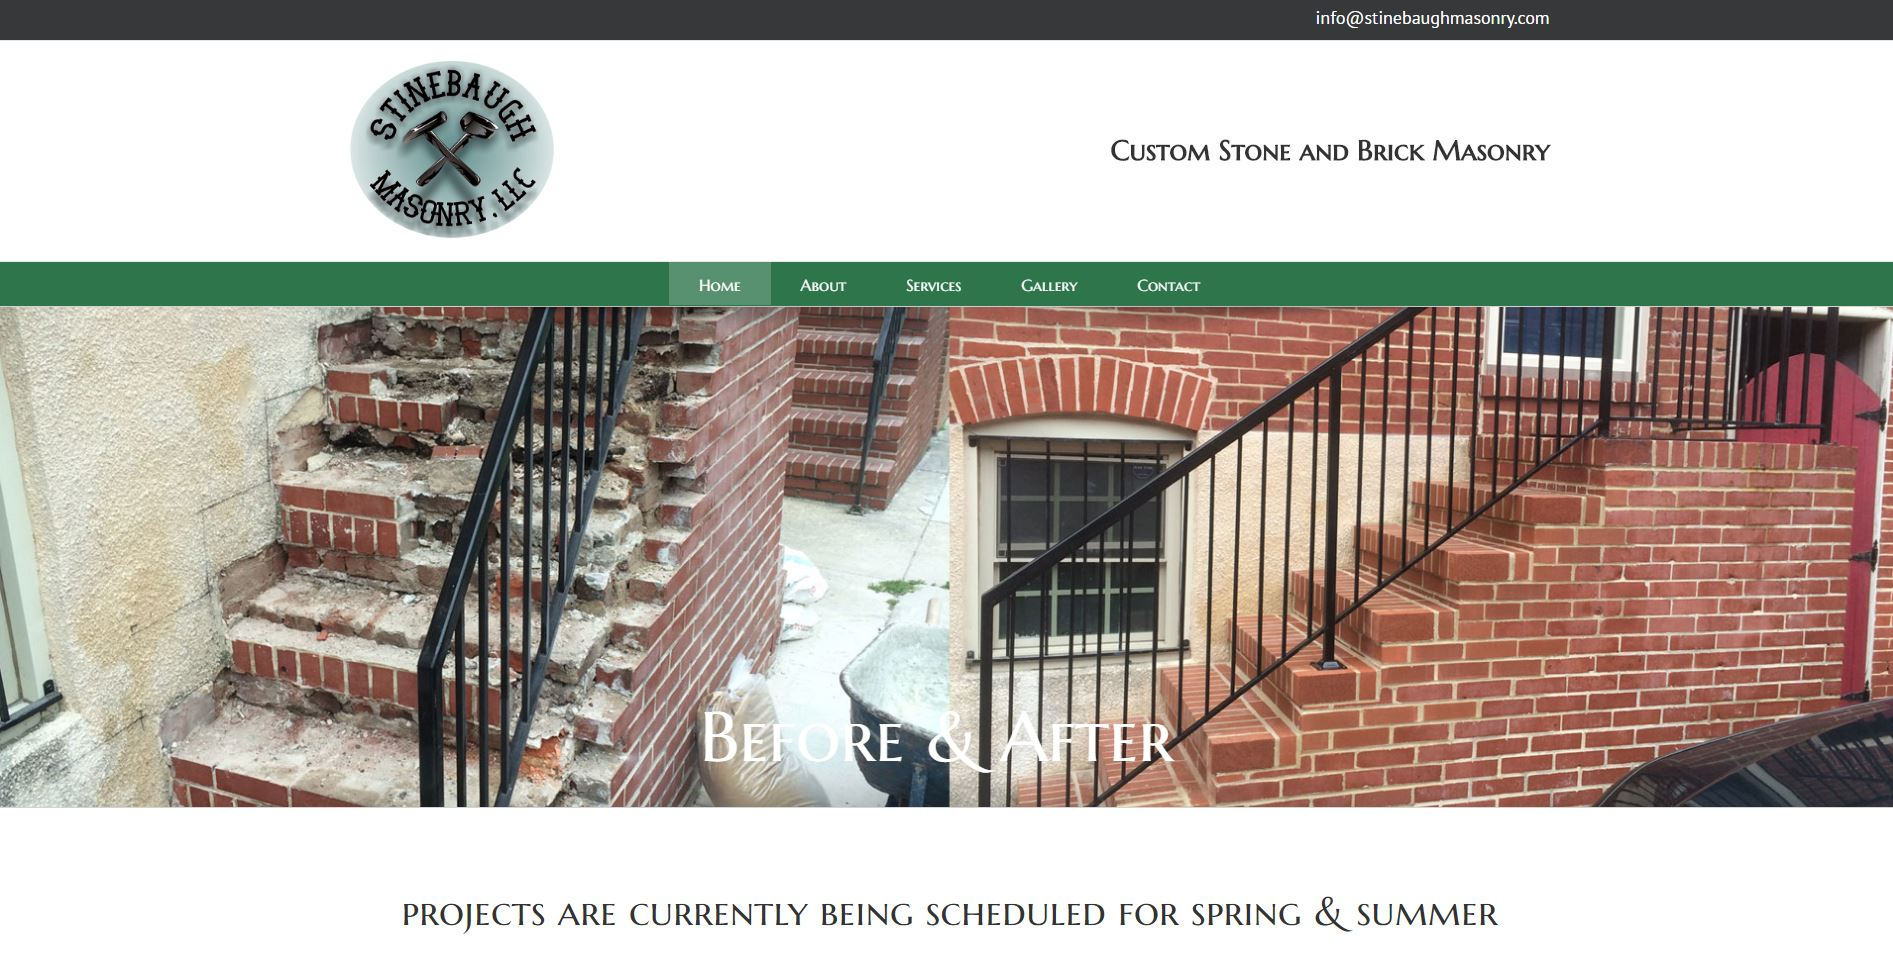 Stinebaugh Masonry: Web Development